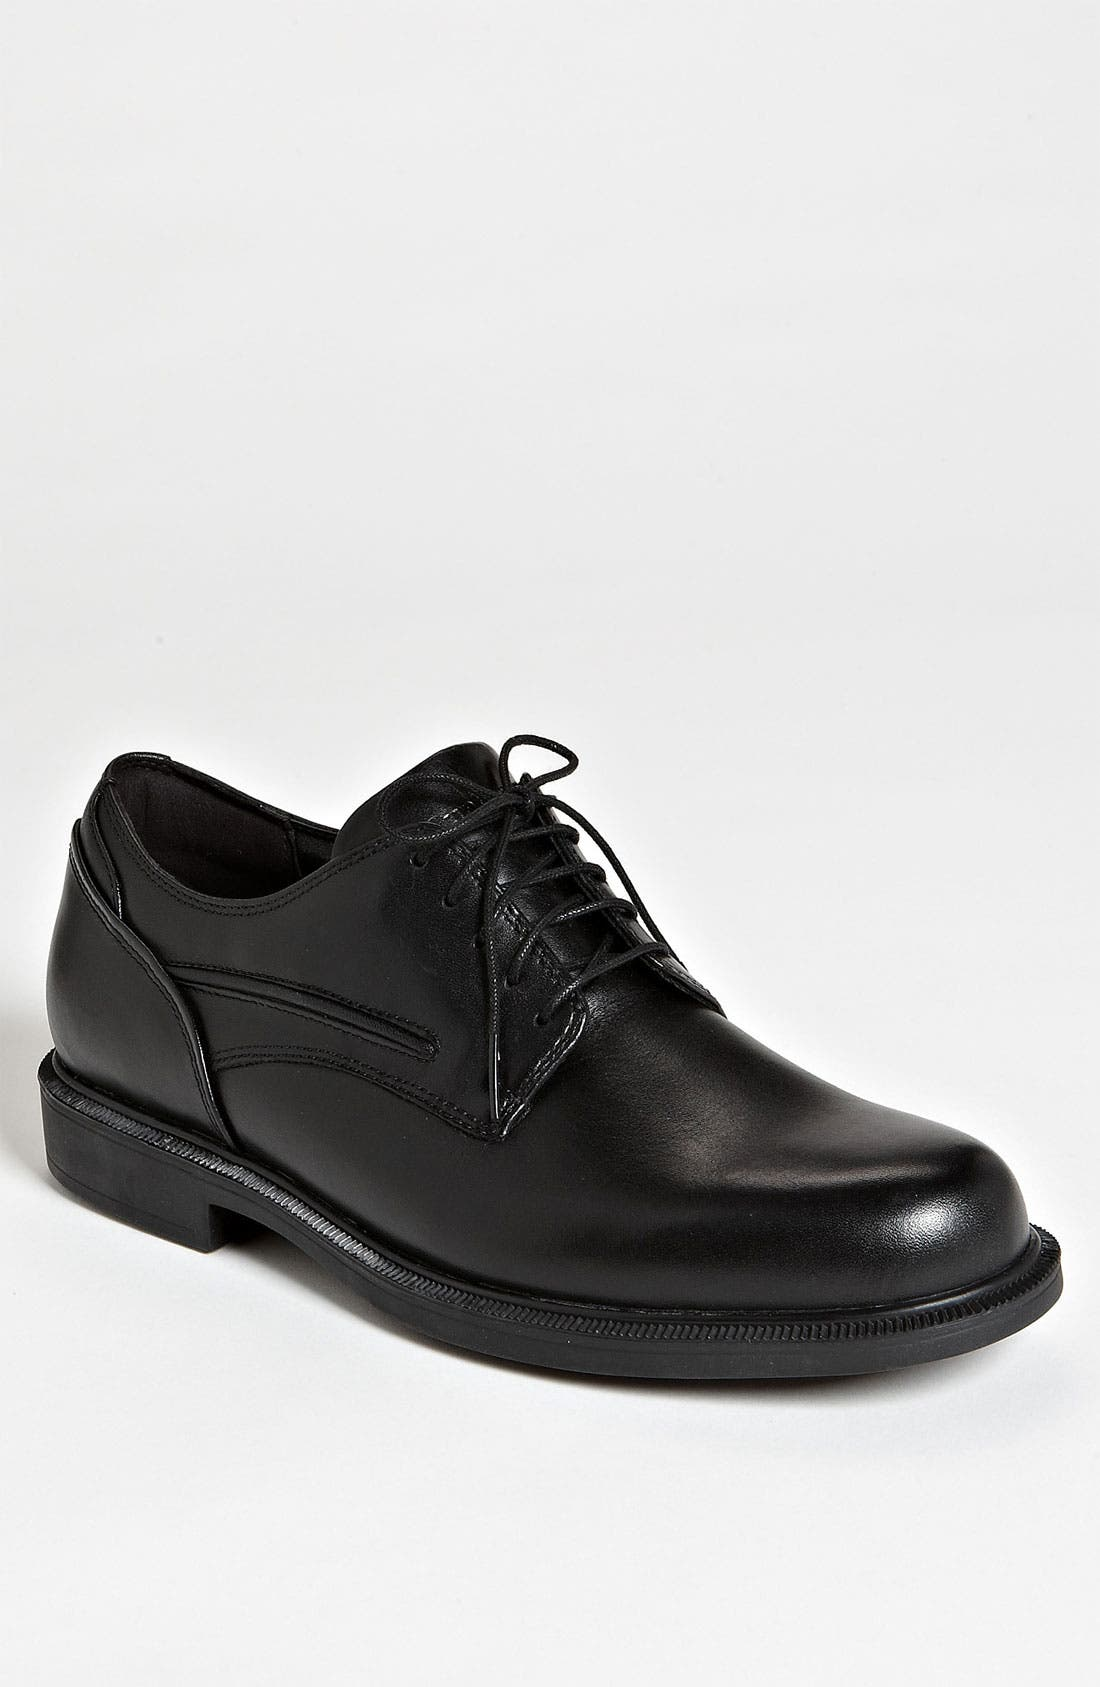 Main Image - Dunham 'Burlington' Oxford